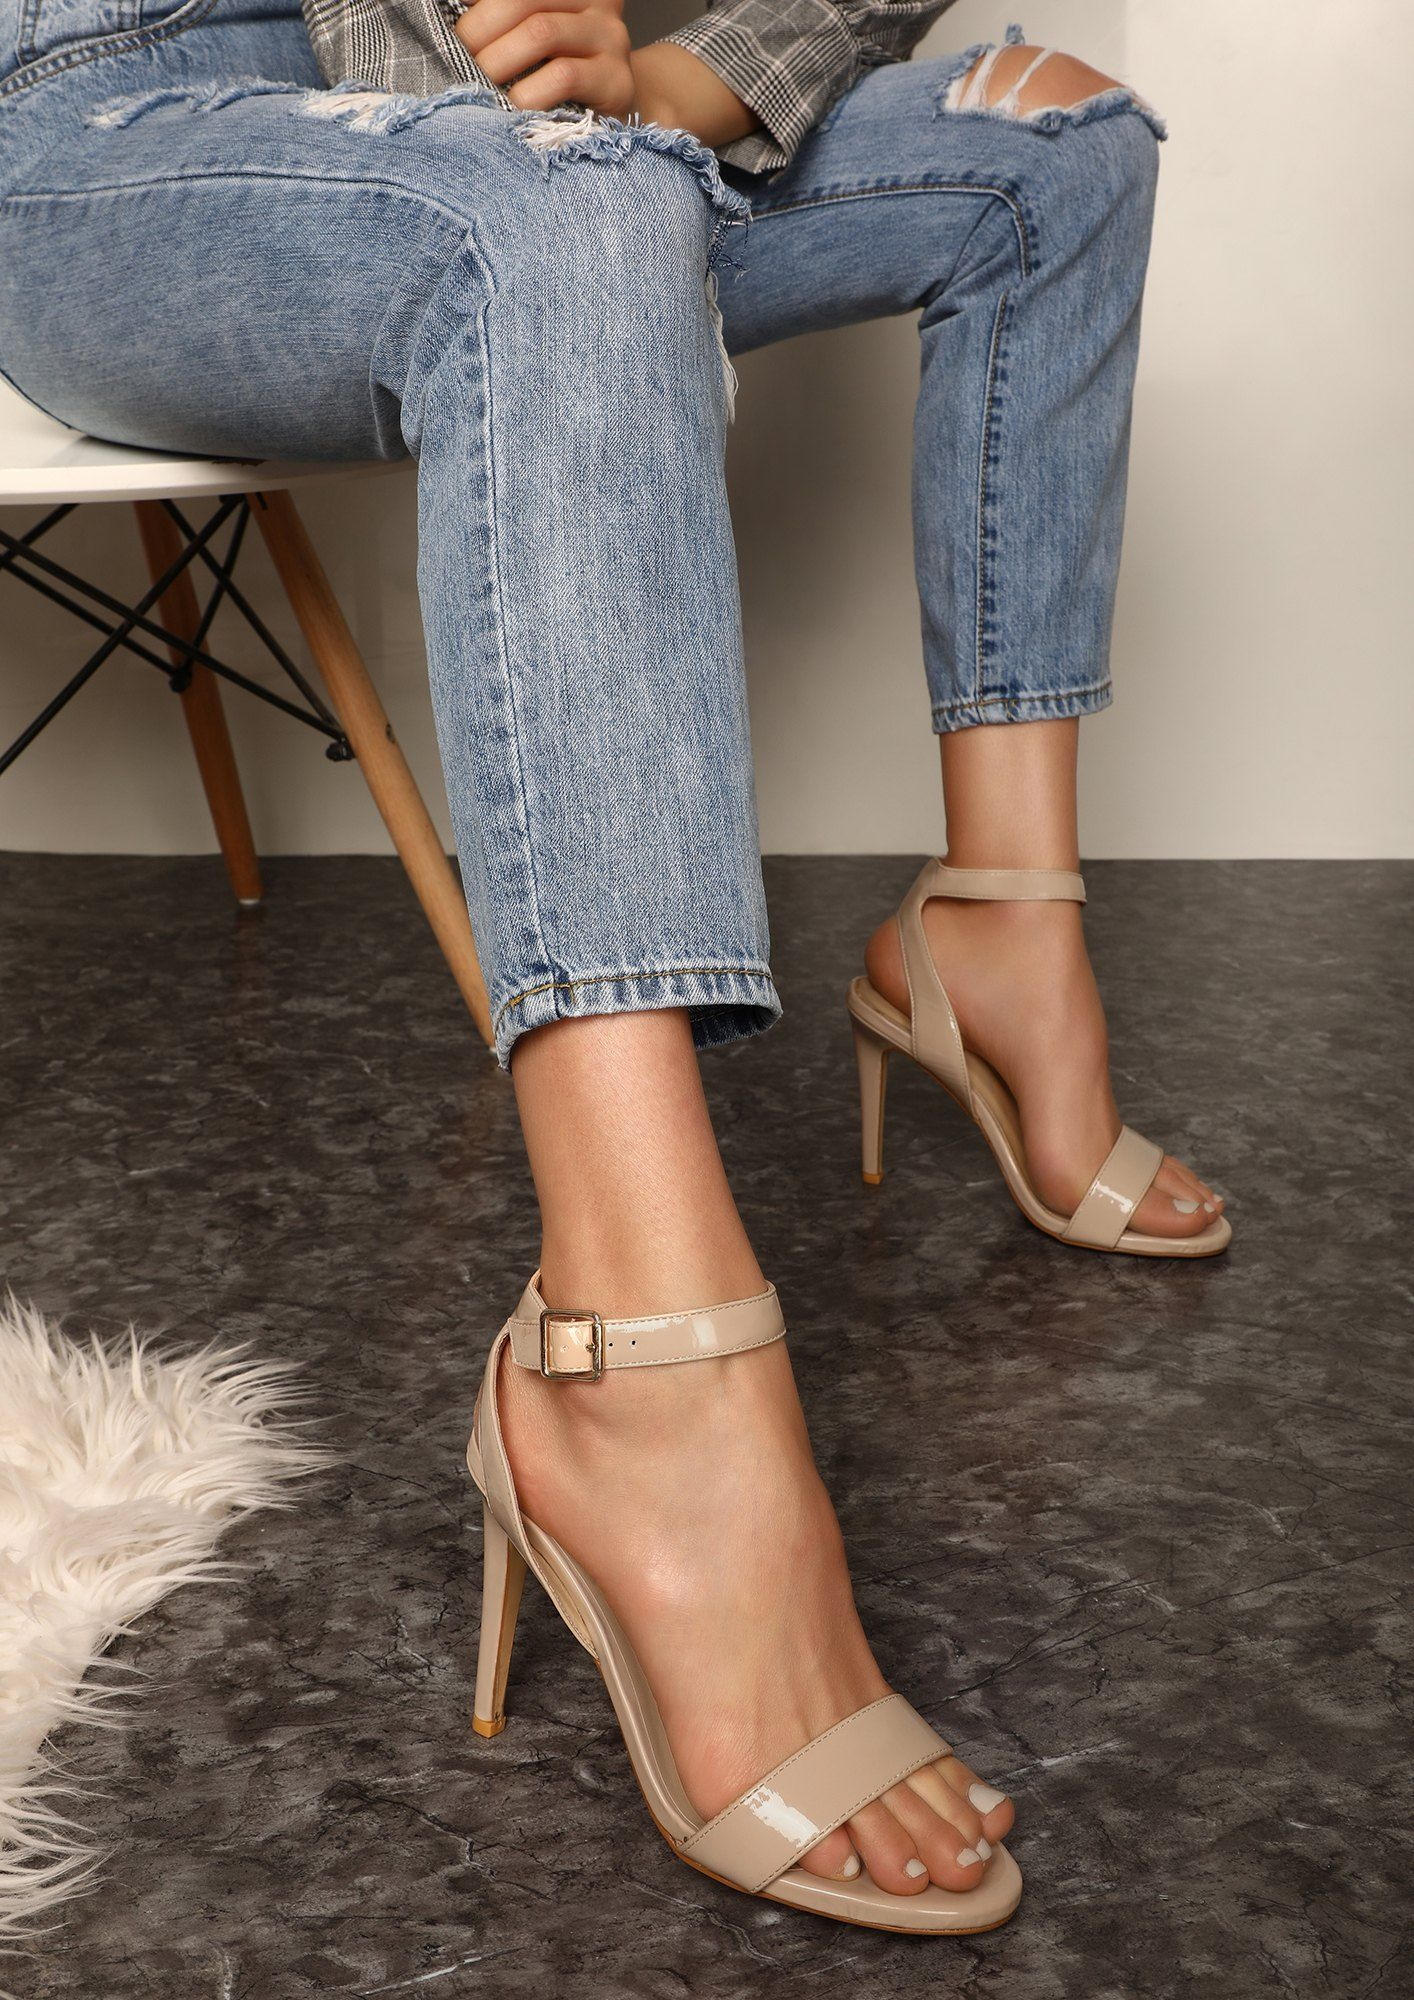 Buy Never Say Sorry Again Beige Heeled Sandals For Women Online In India Womenshoesonlineindia Beige Sandals Heels Sandals Heels Red Sandals Heels